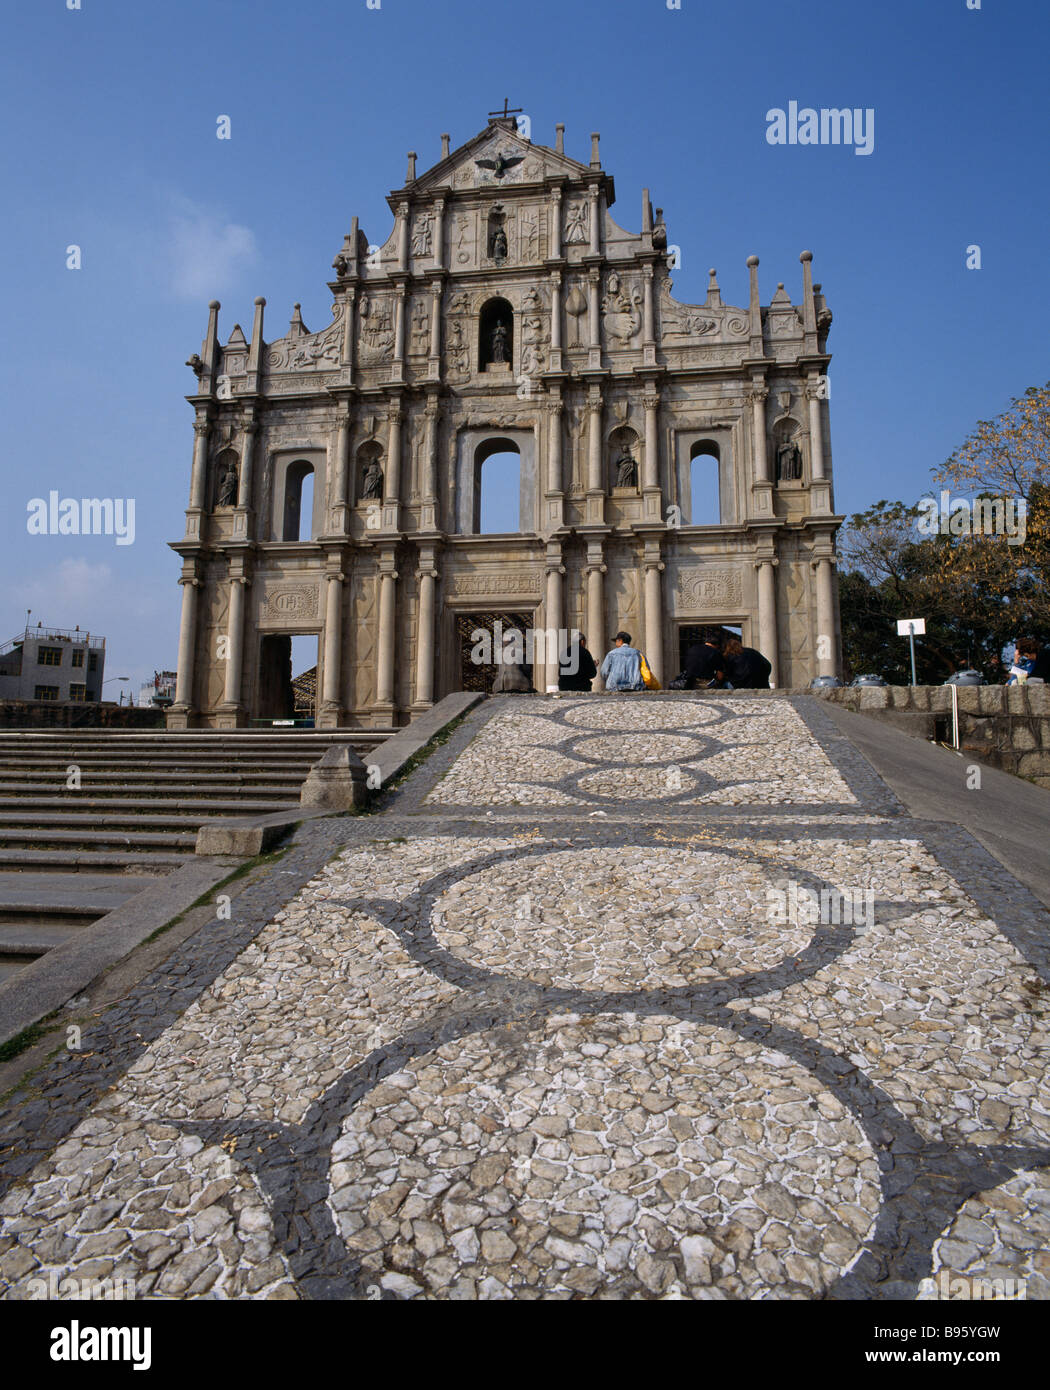 MACAU  Sao Paulo Church remains with statues in recessed arches and mosaic path - Stock Image